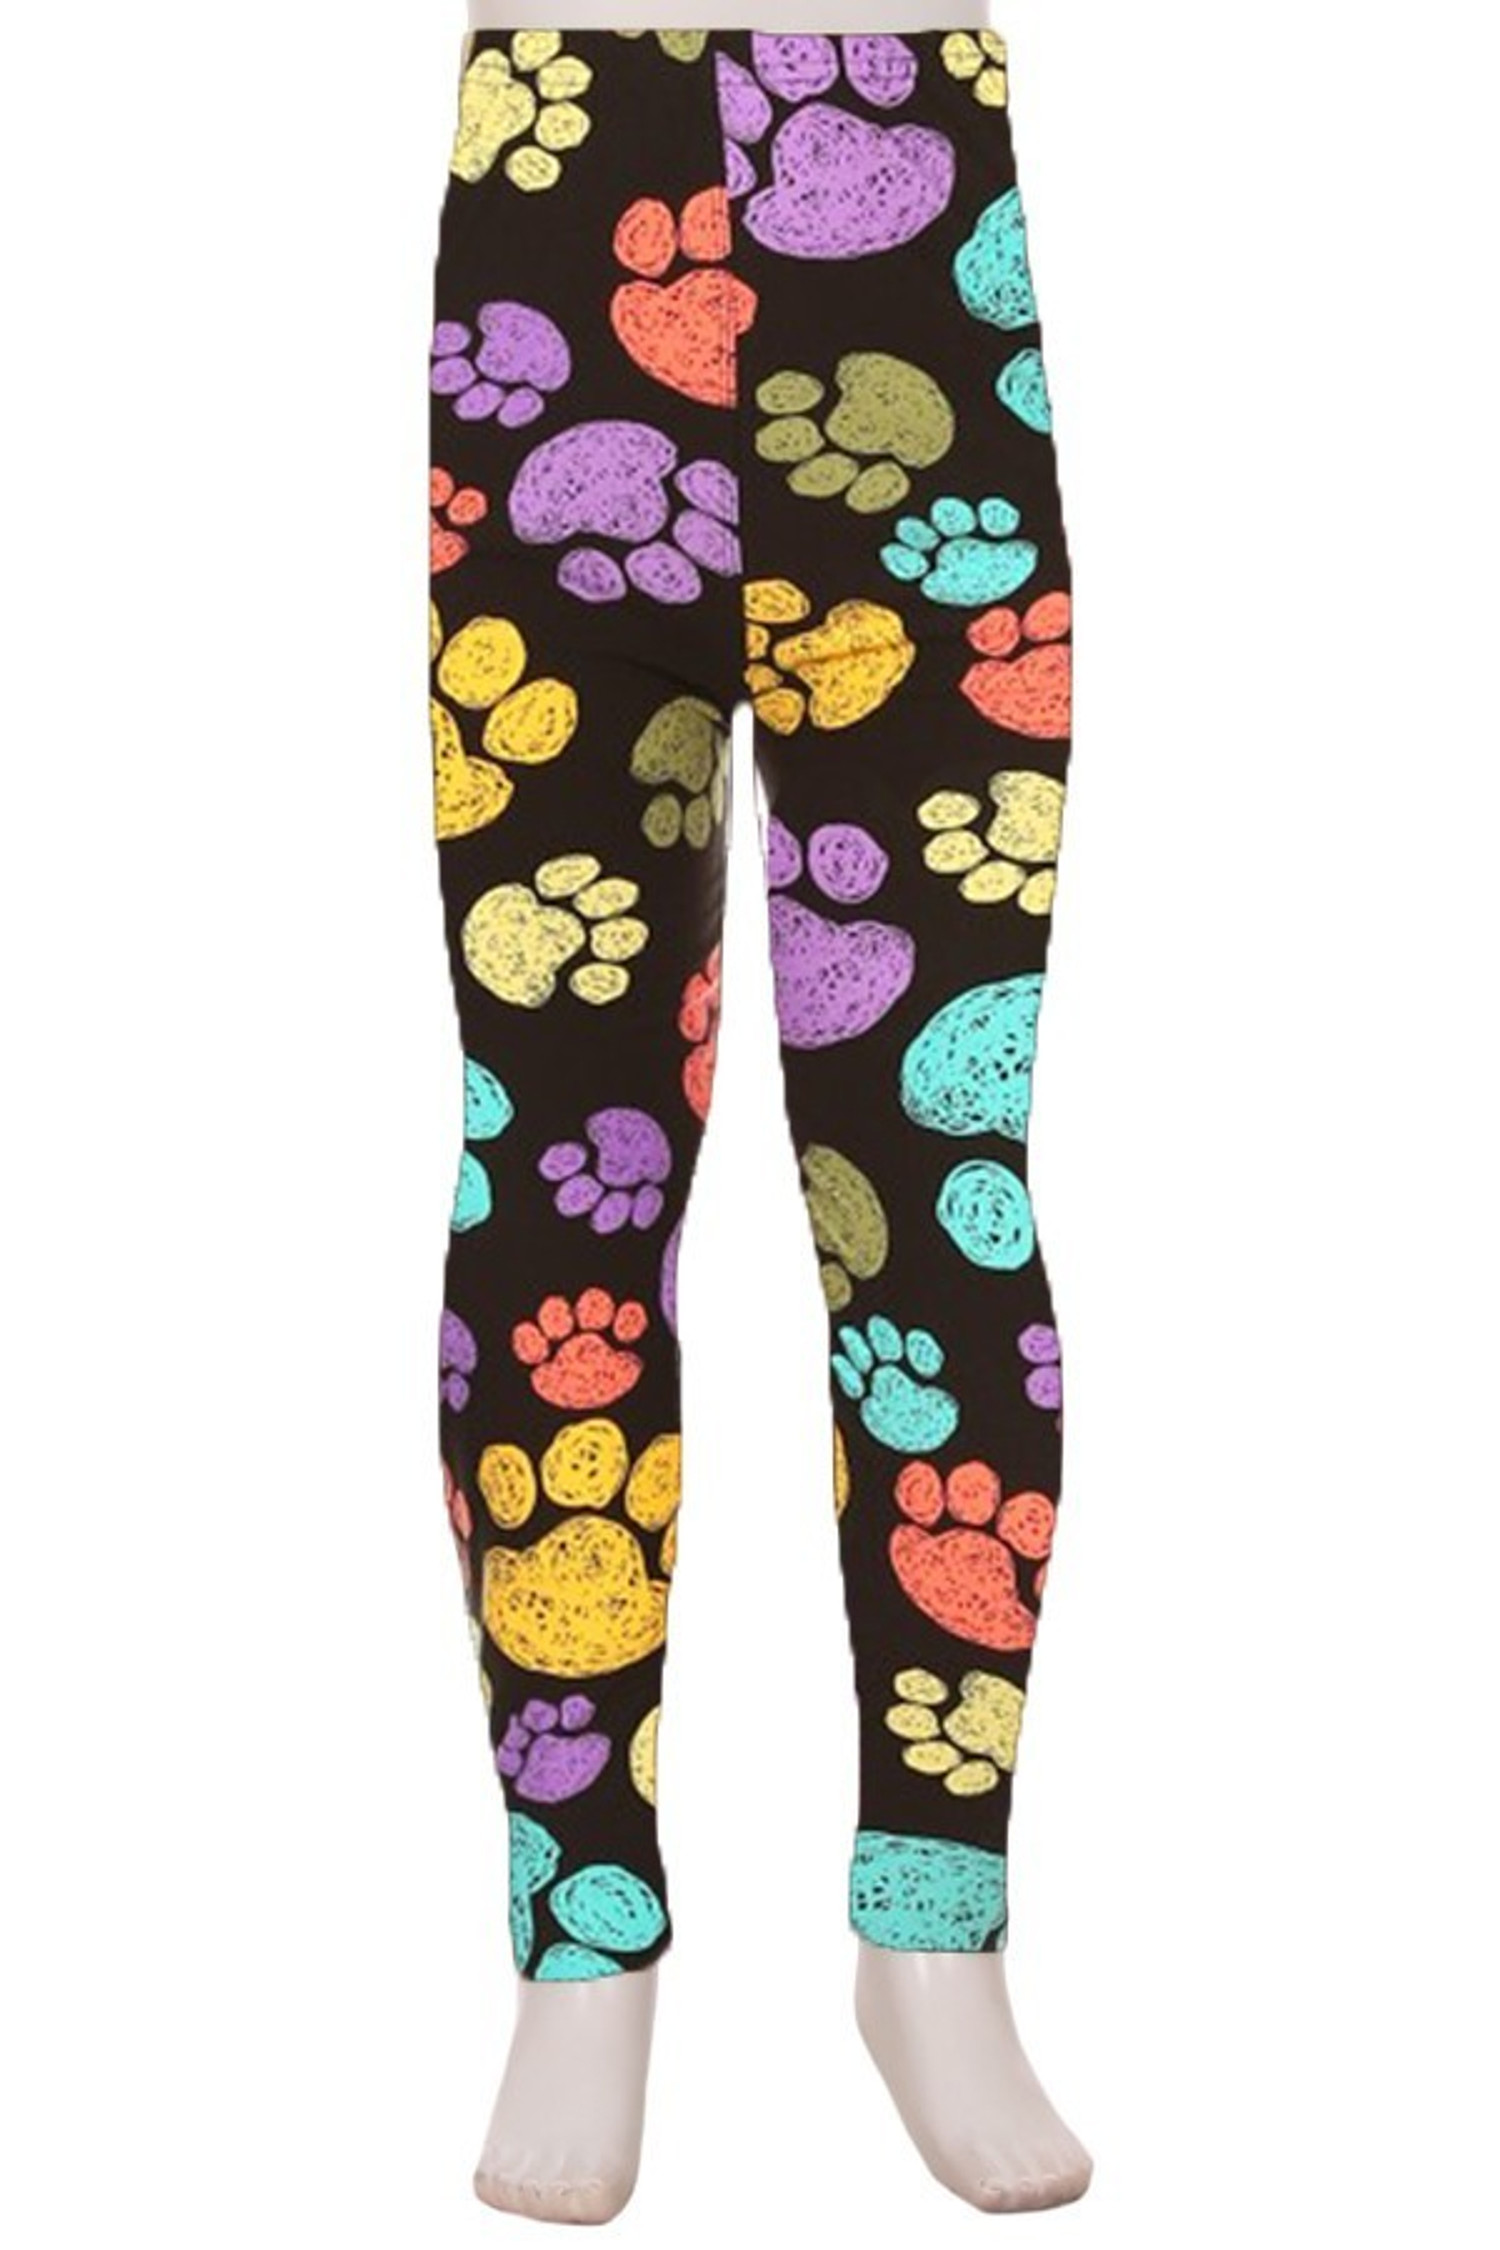 Front of Creamy Soft Colorful Paw Print Kids Leggings - USA Fashion™ with a colorful design on a black fabric base.